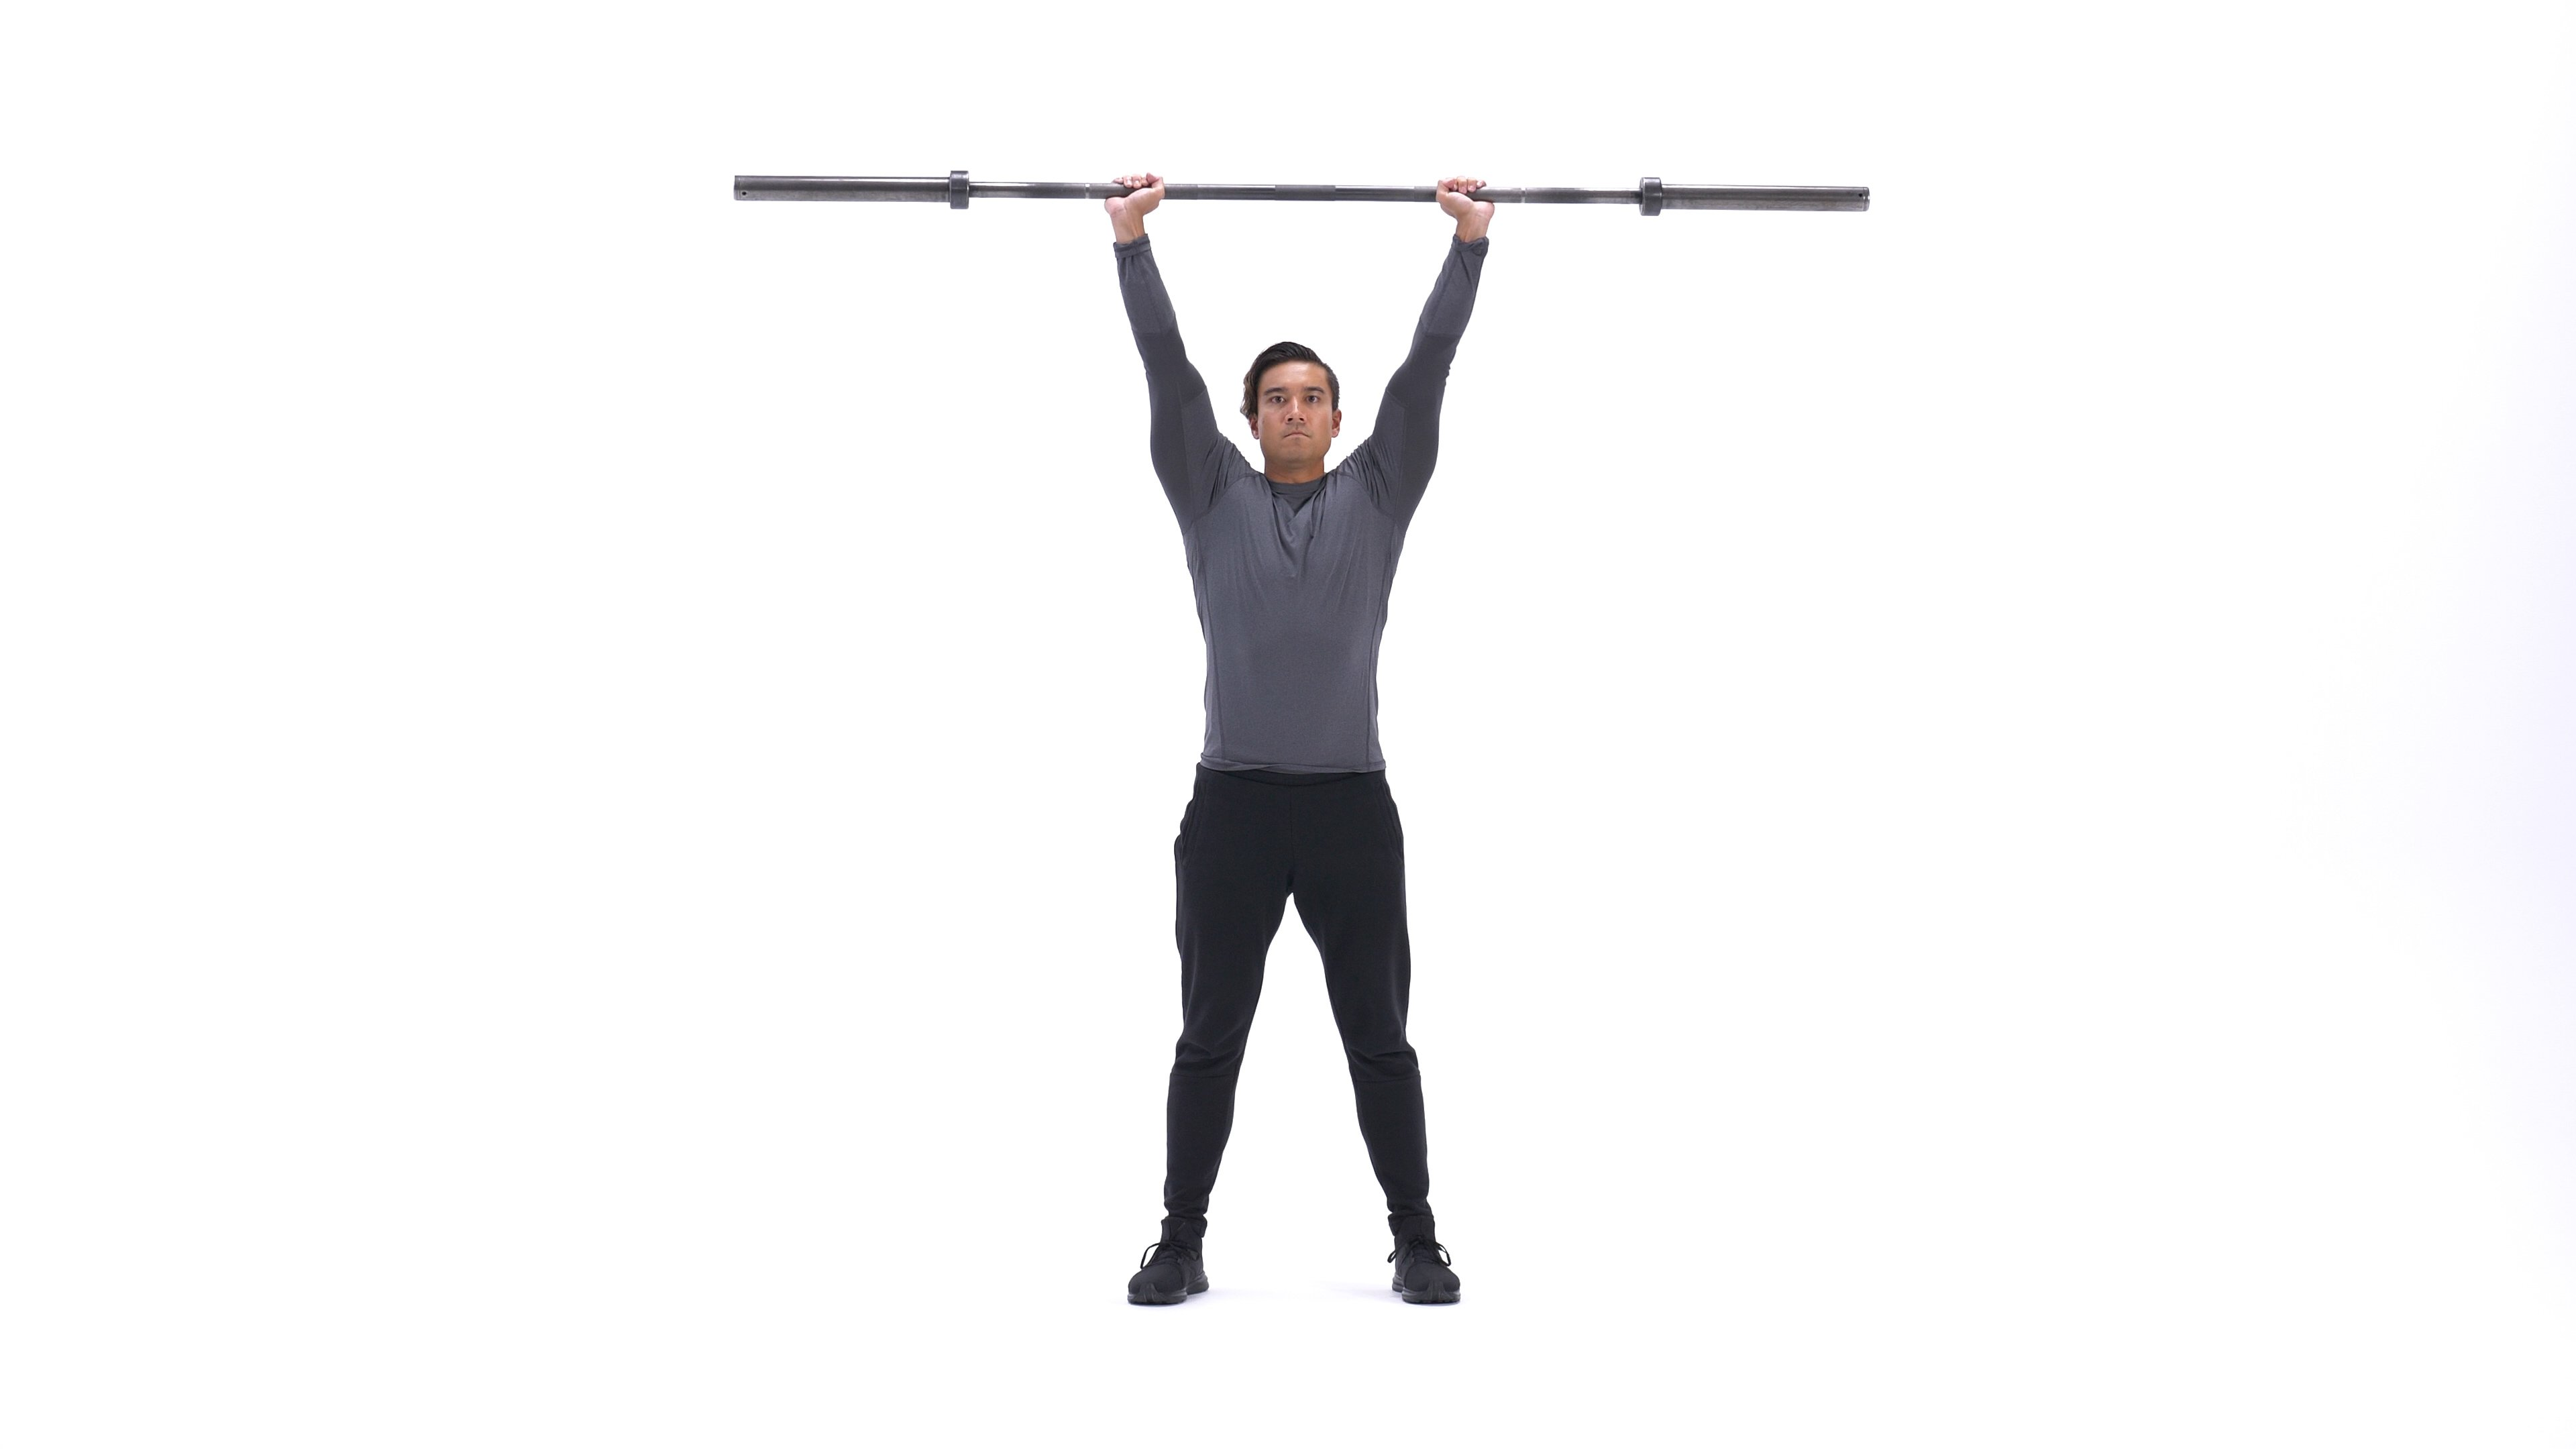 Barbell thruster image